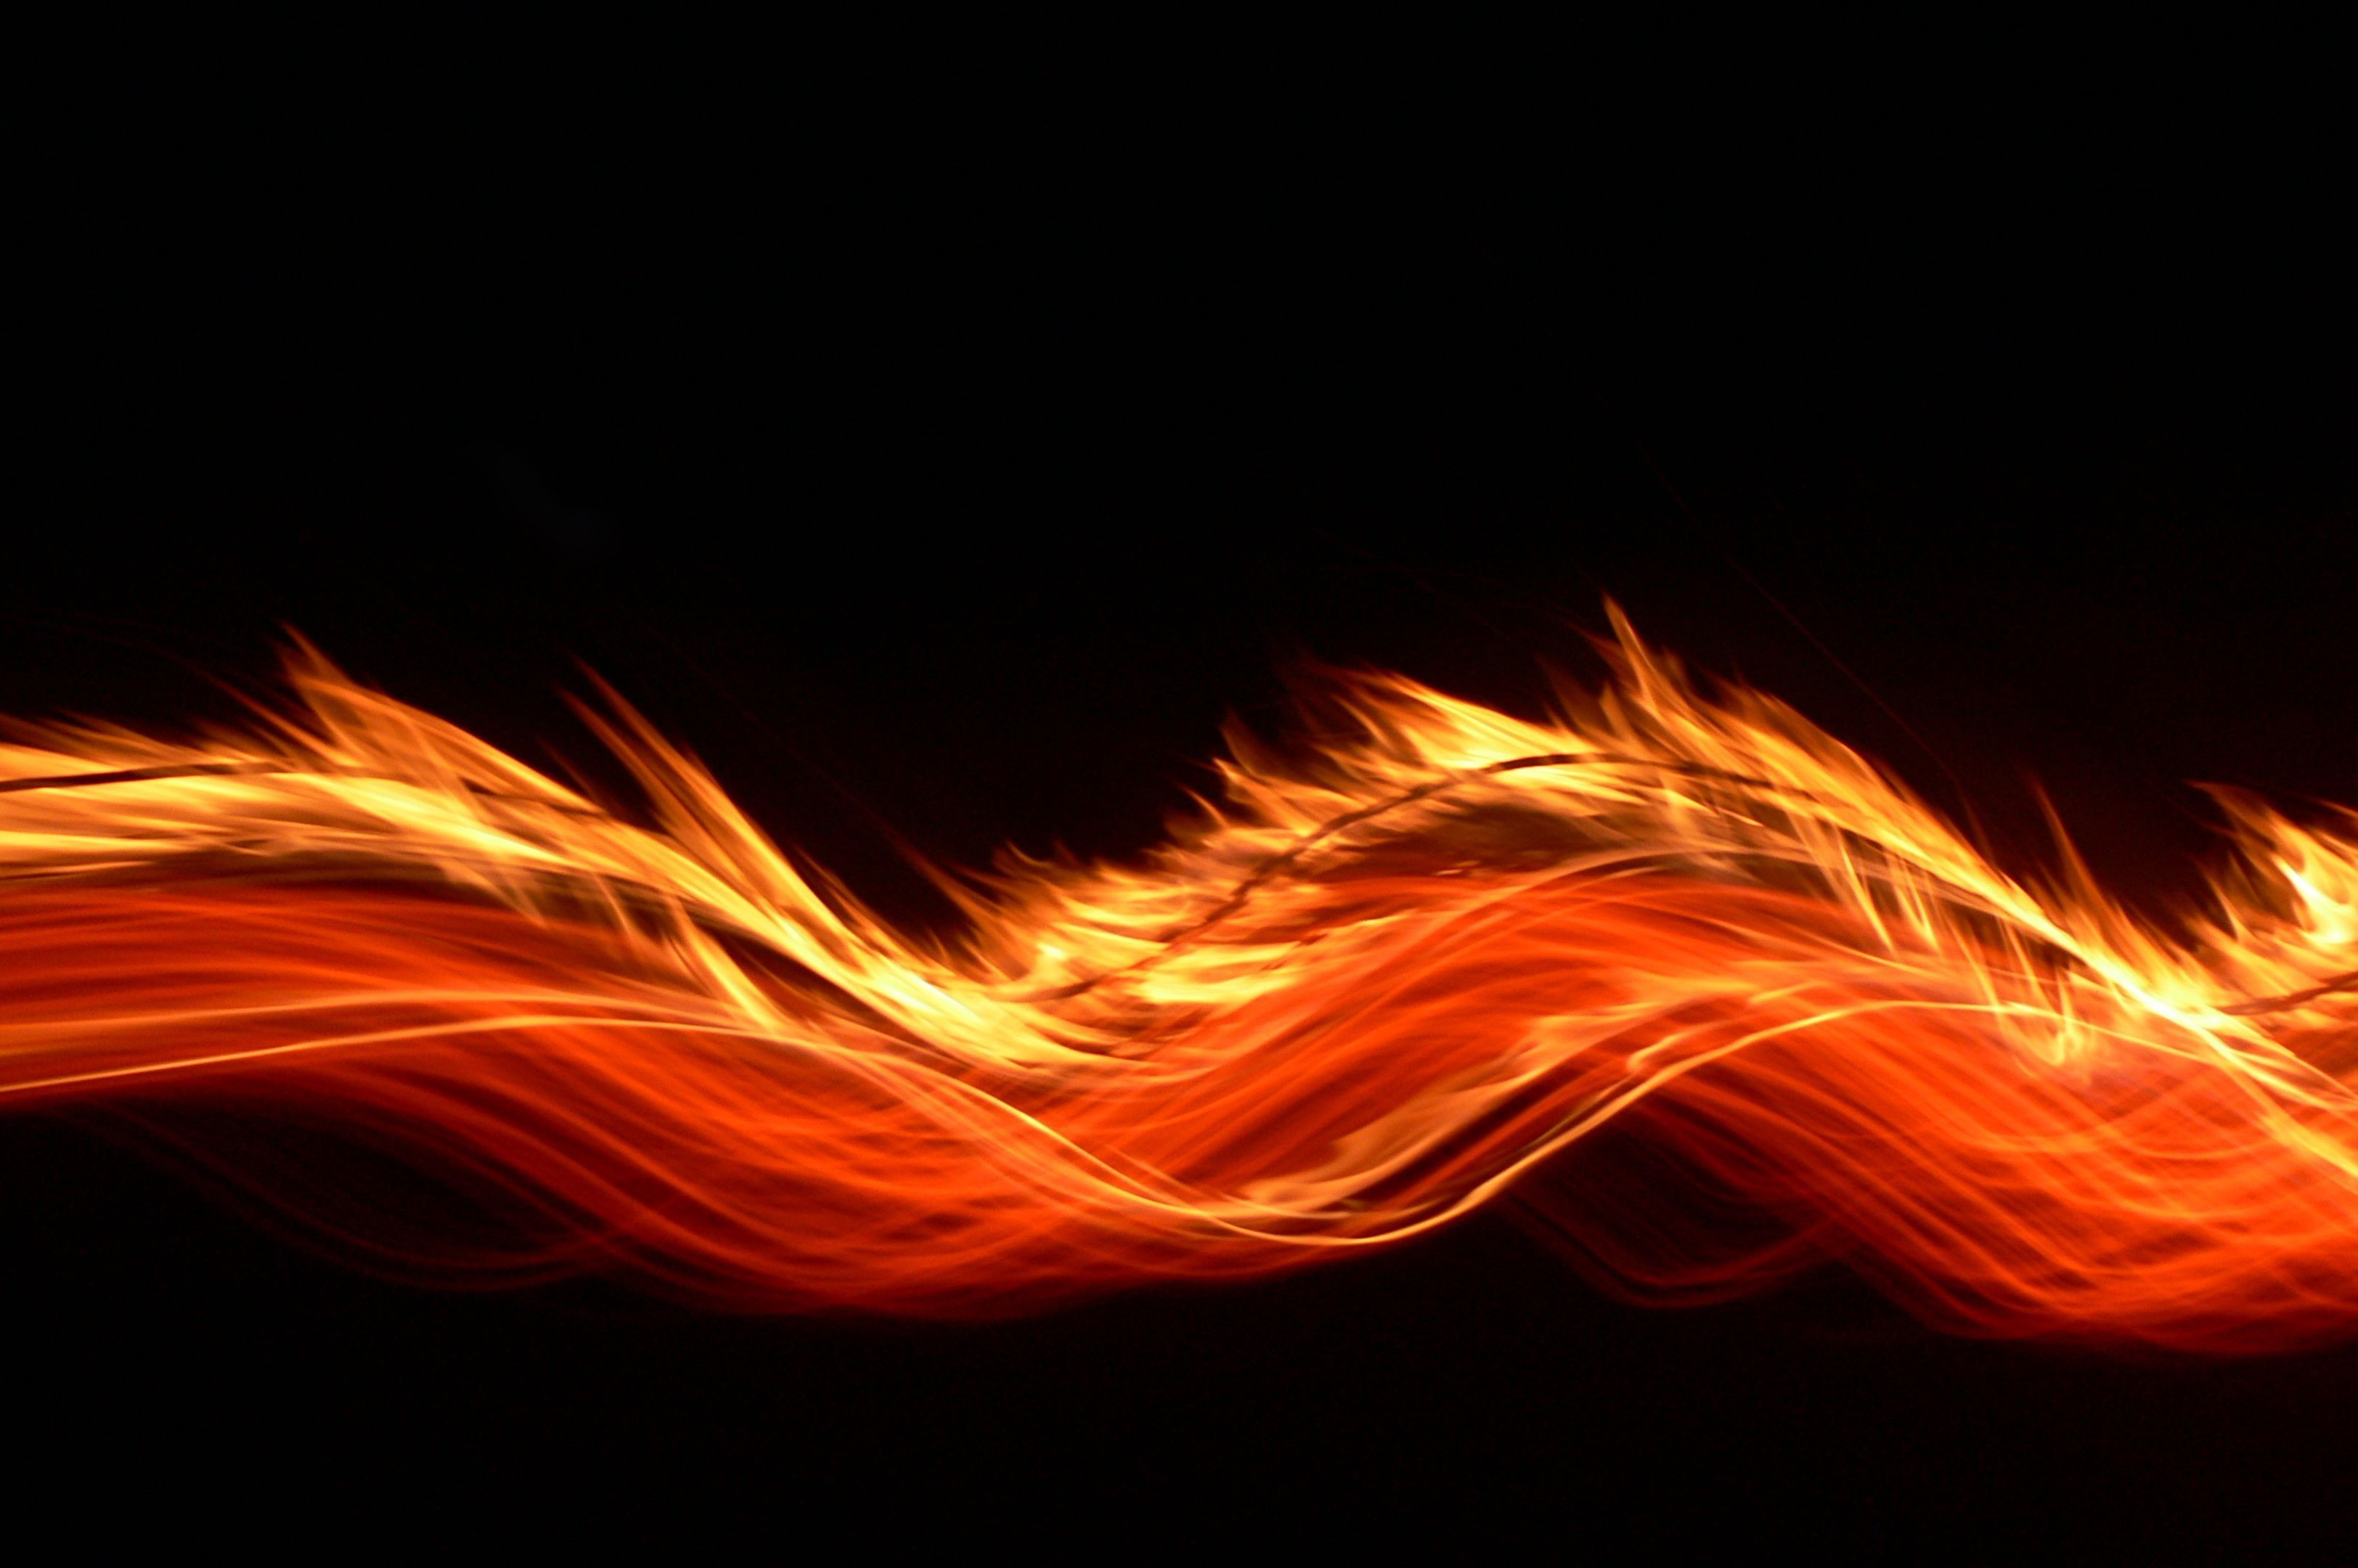 Res: 3248x2160, Wave-of-Flame-Wallpapers.jpg